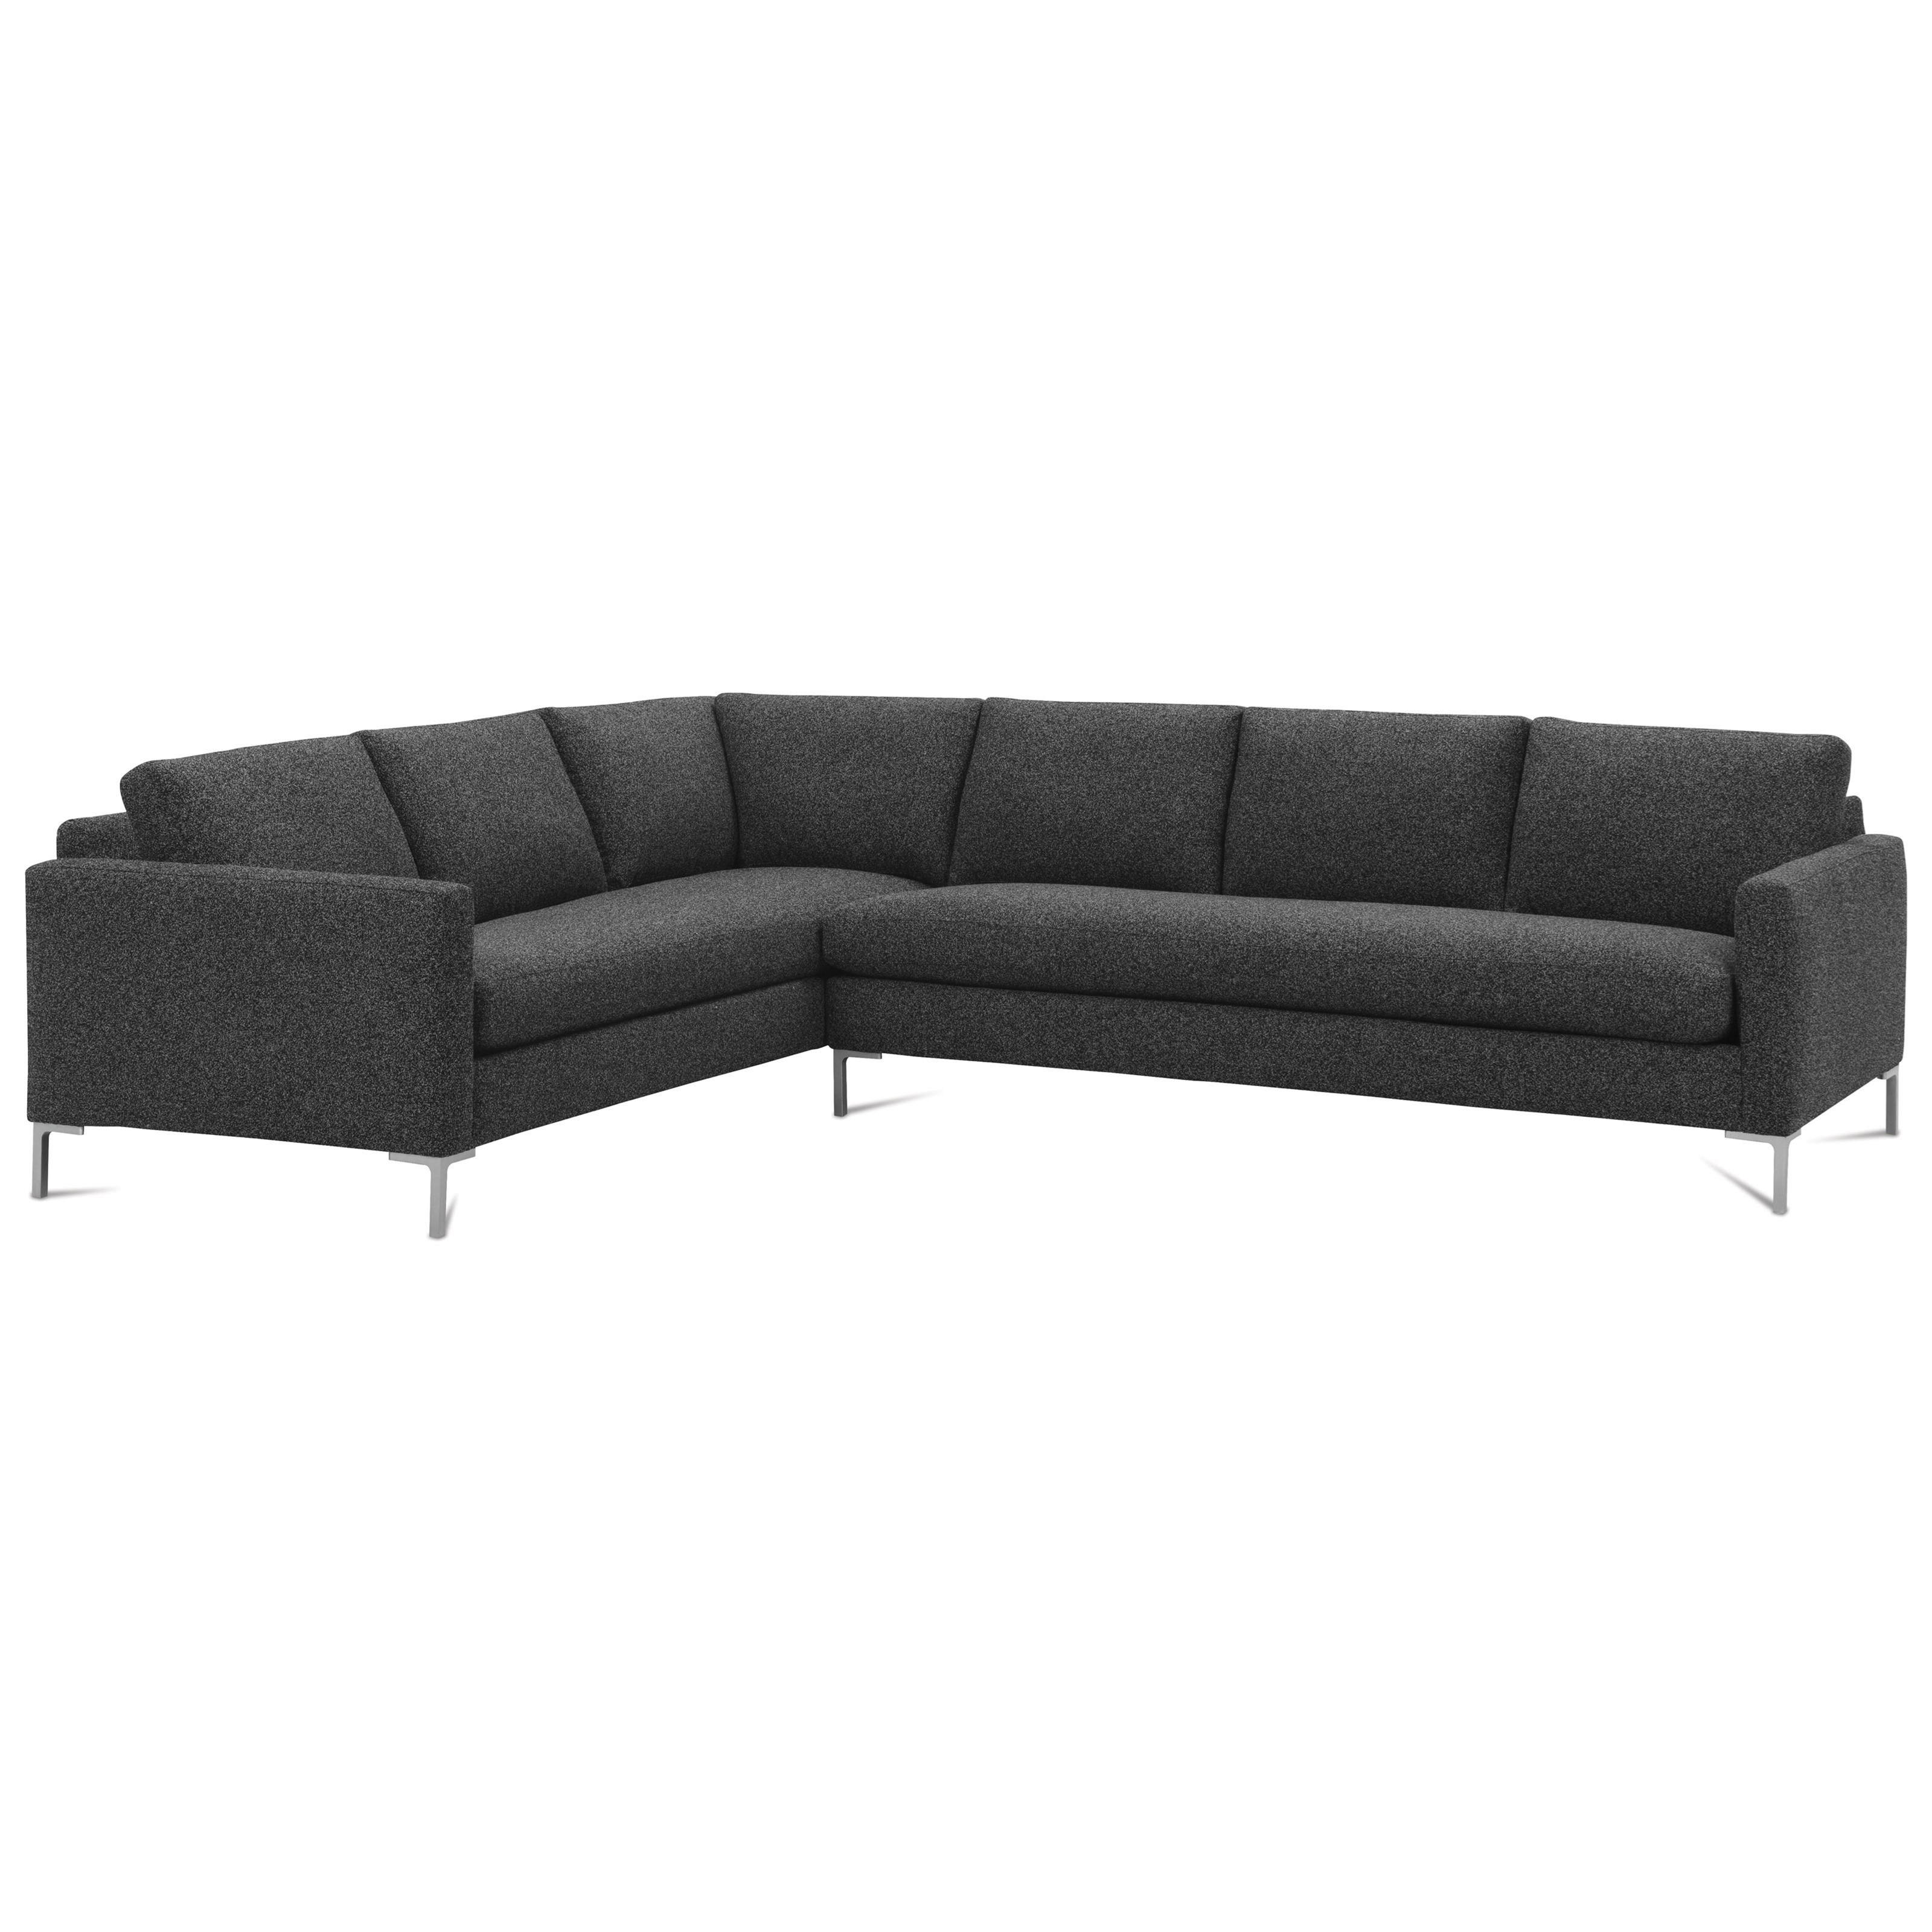 Modern Mix Sectional Sofa by Rowe at Baer's Furniture